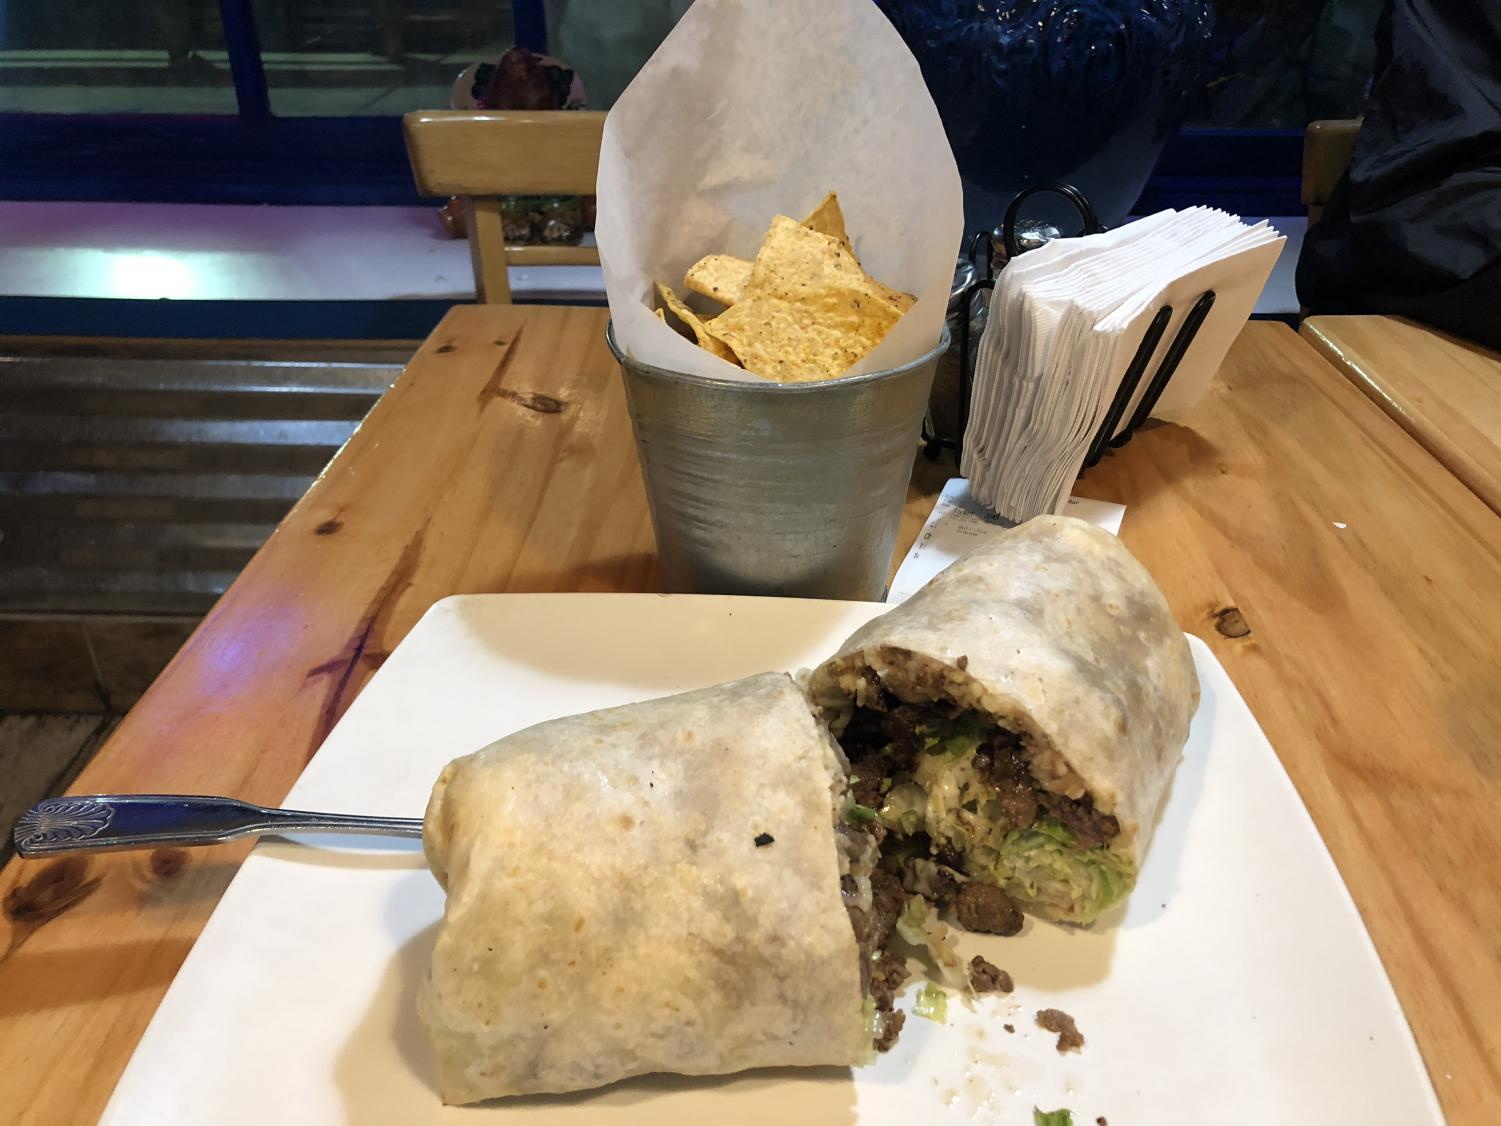 The grade steak burrito from Taco Grill & Salsa Bar always hits the spot and fills late-night cravings.